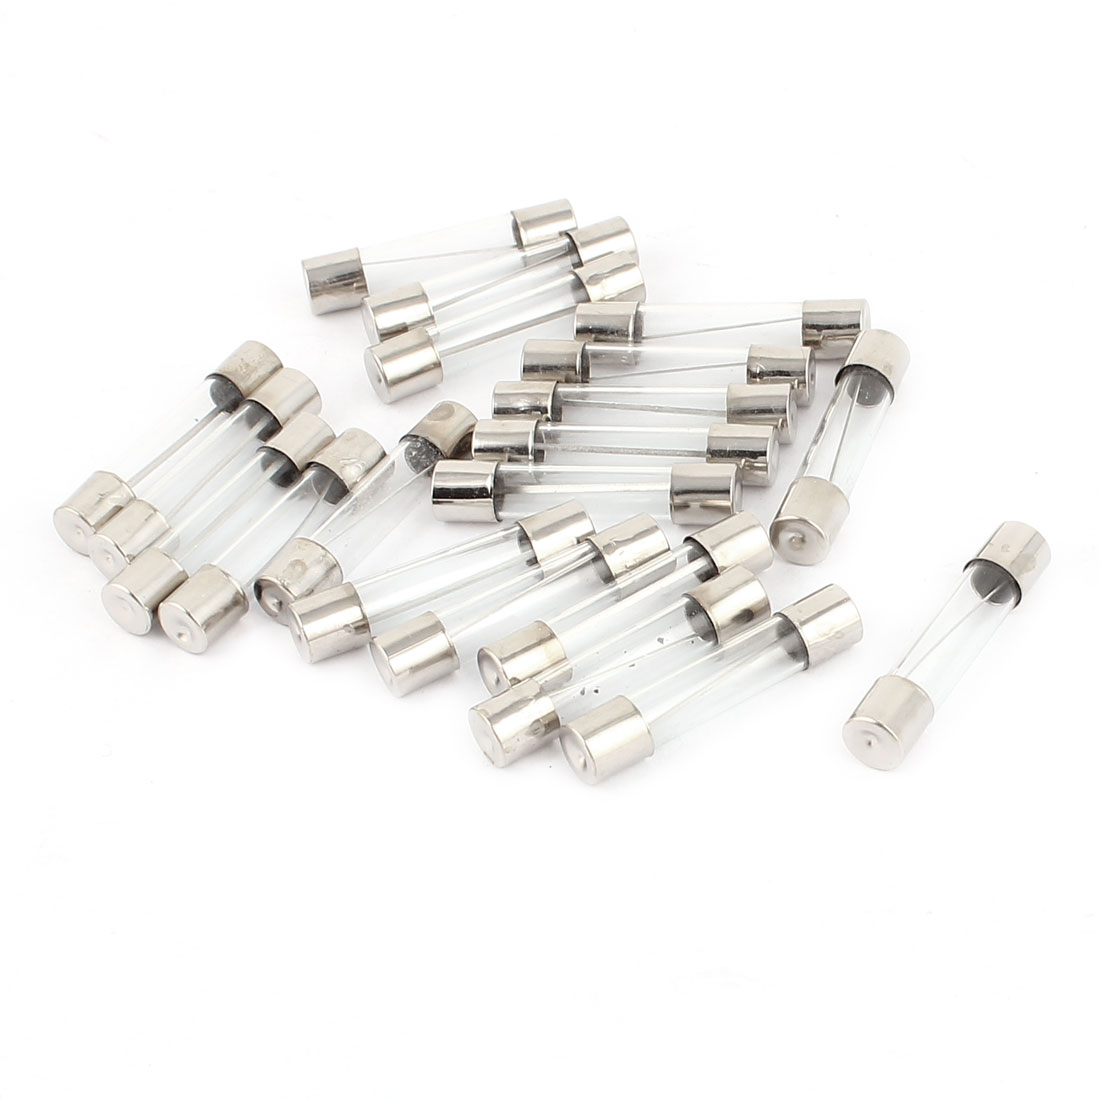 AC 250V 20A 6mm x 30mm Quick Acting Fast Blow Type Glass Tube Fuse 20pcs